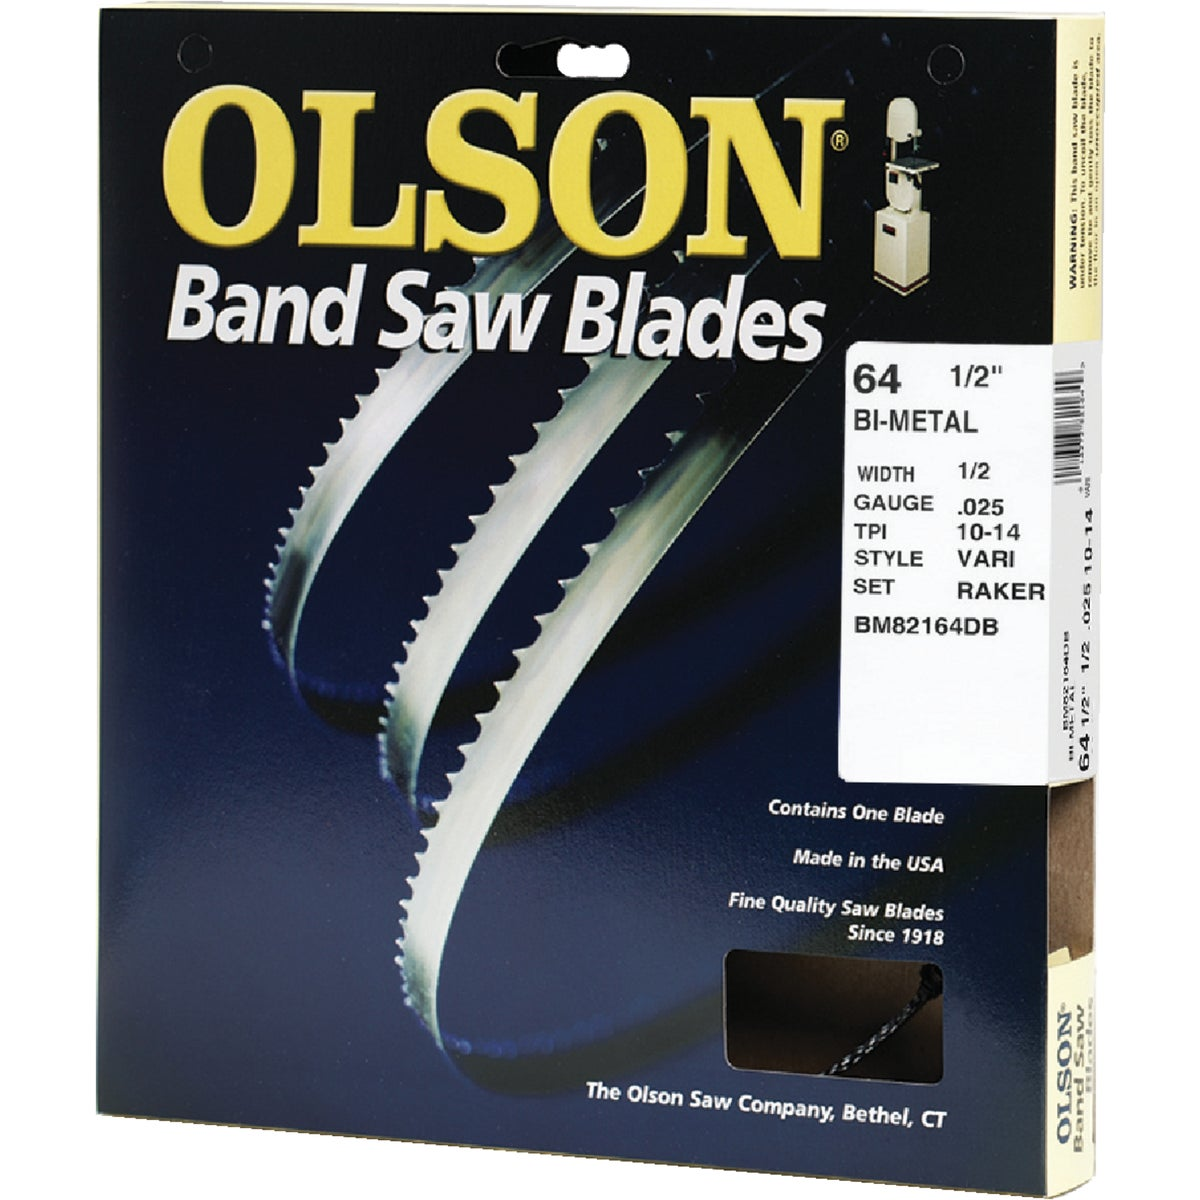 "64-1/2"" BANDSAW BLADE - 82164 by Olson Saw Co"